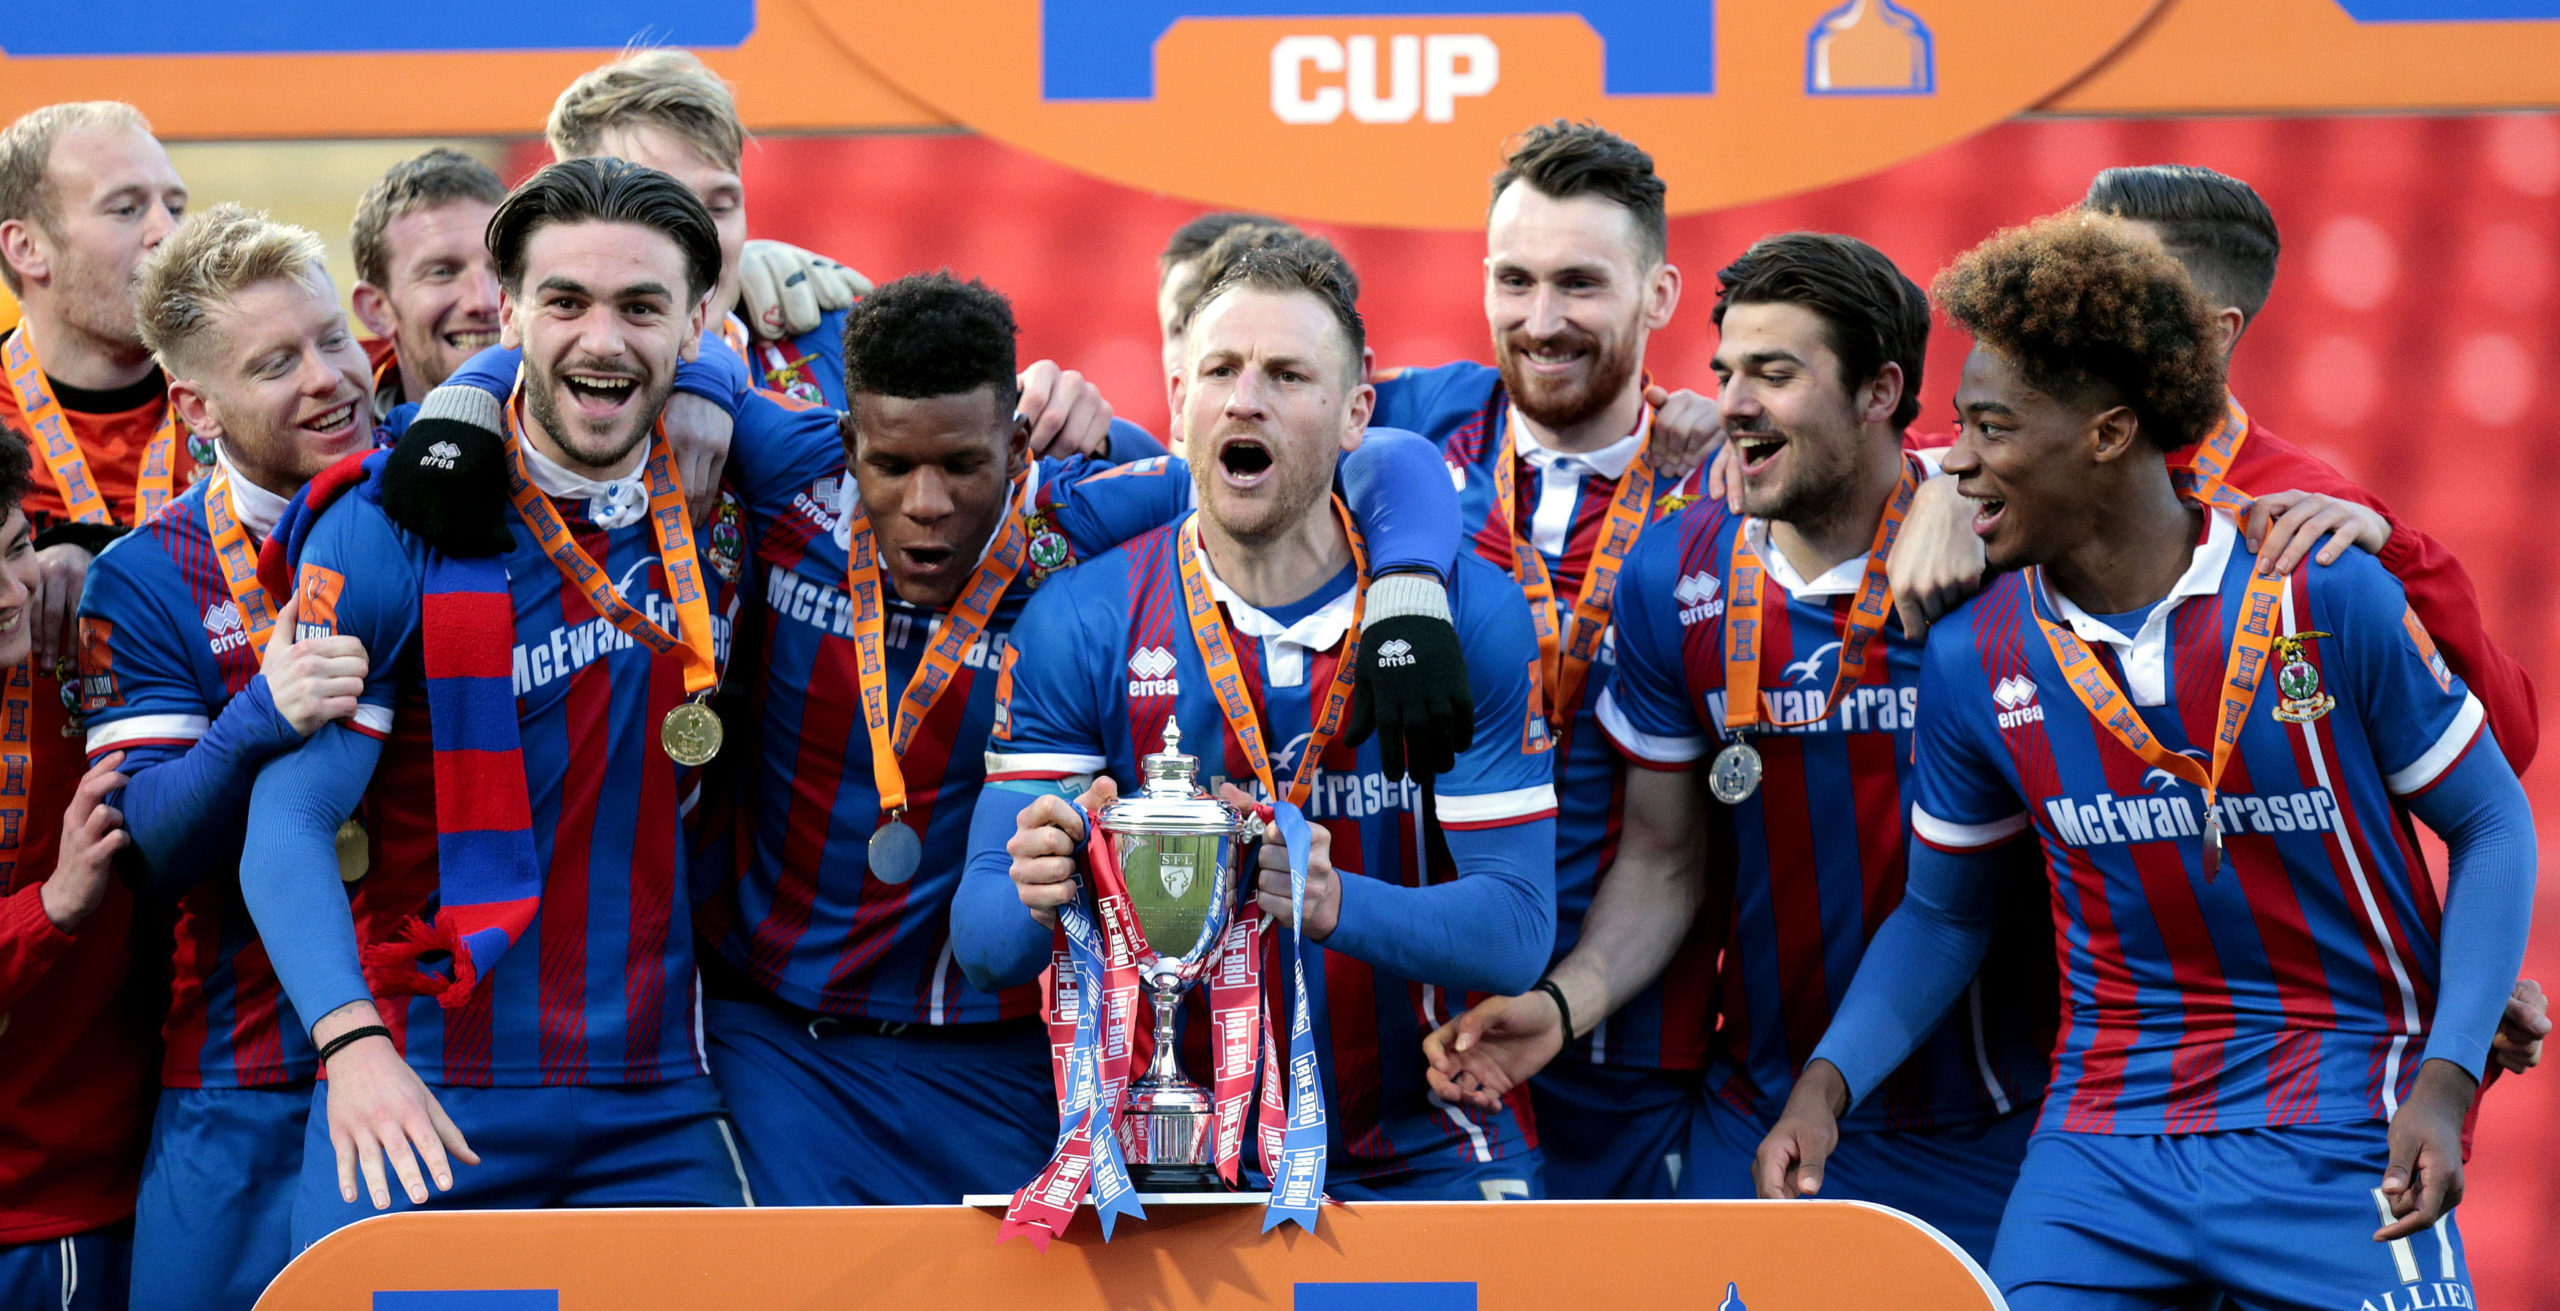 Gary Warren lifts the Irn-Bru Cup for Caley Thistle after defeating Dumbarton.